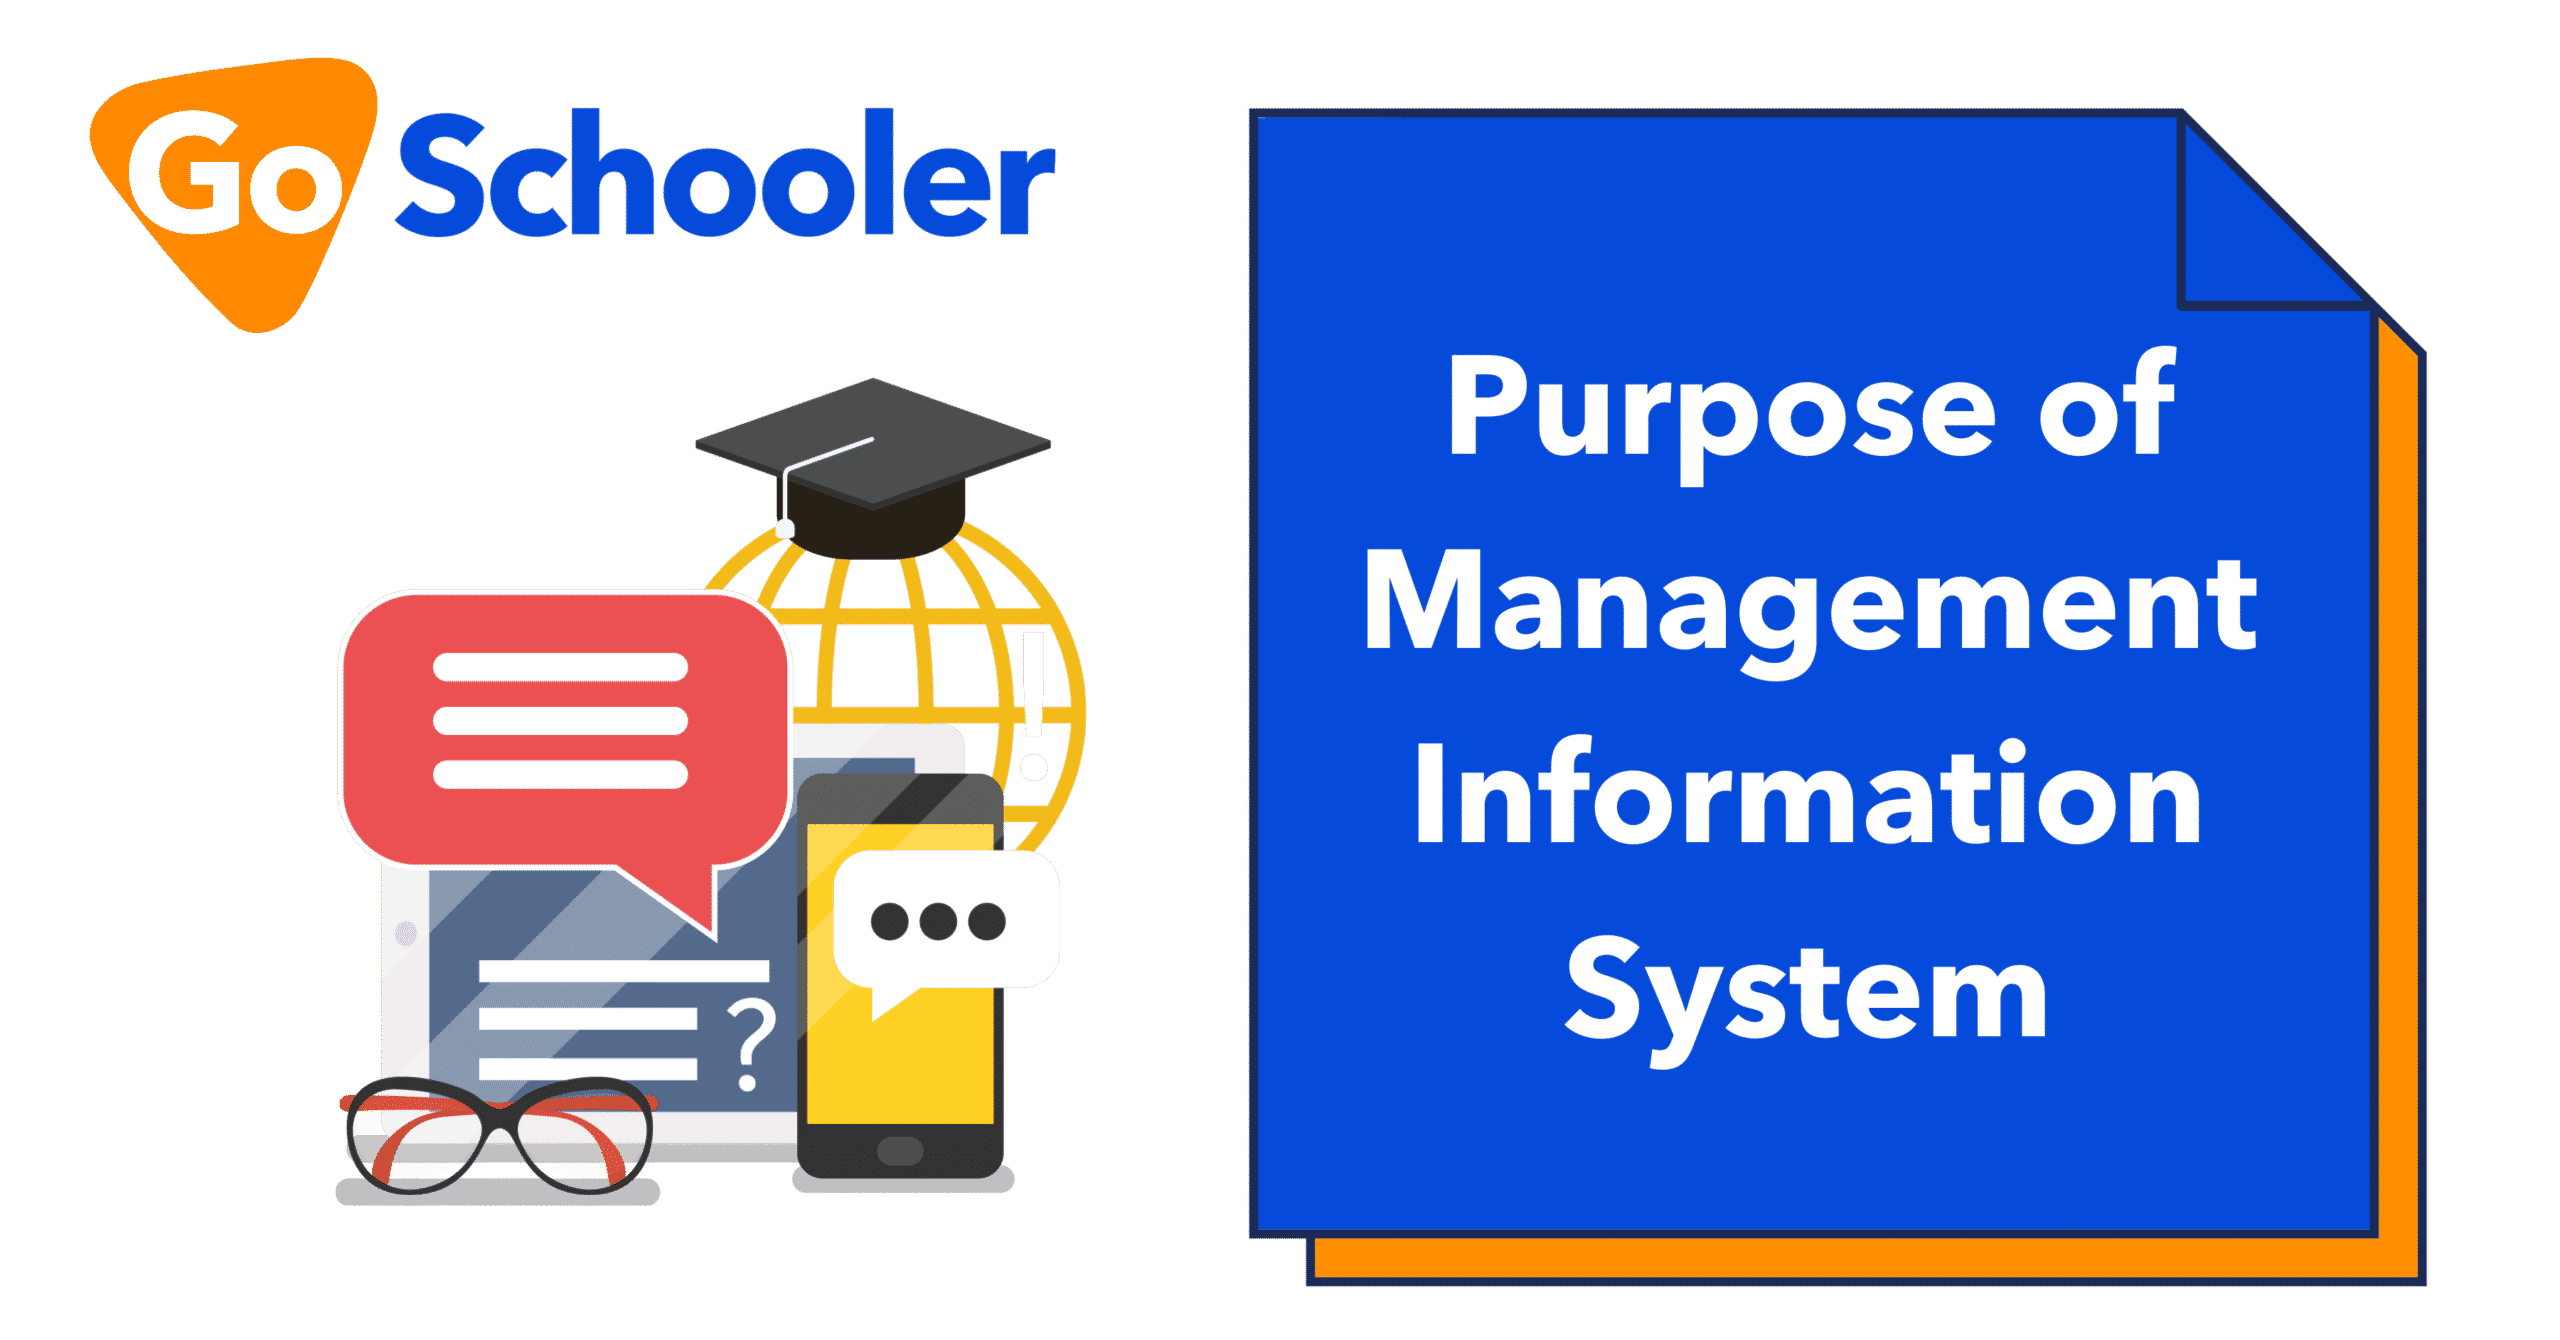 Purpose of Management Information System